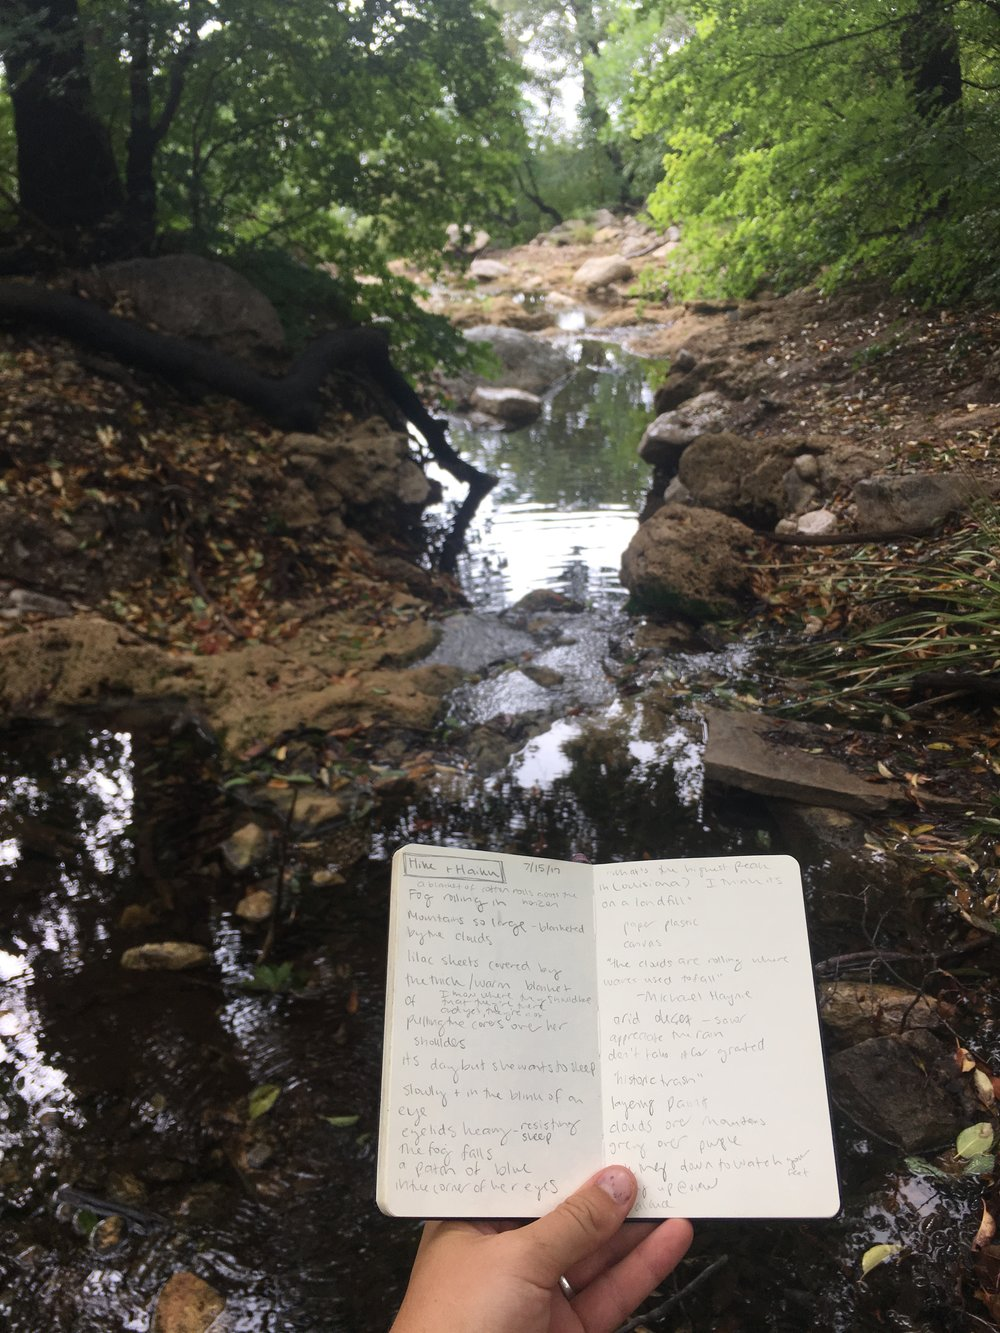 Notes from the hike